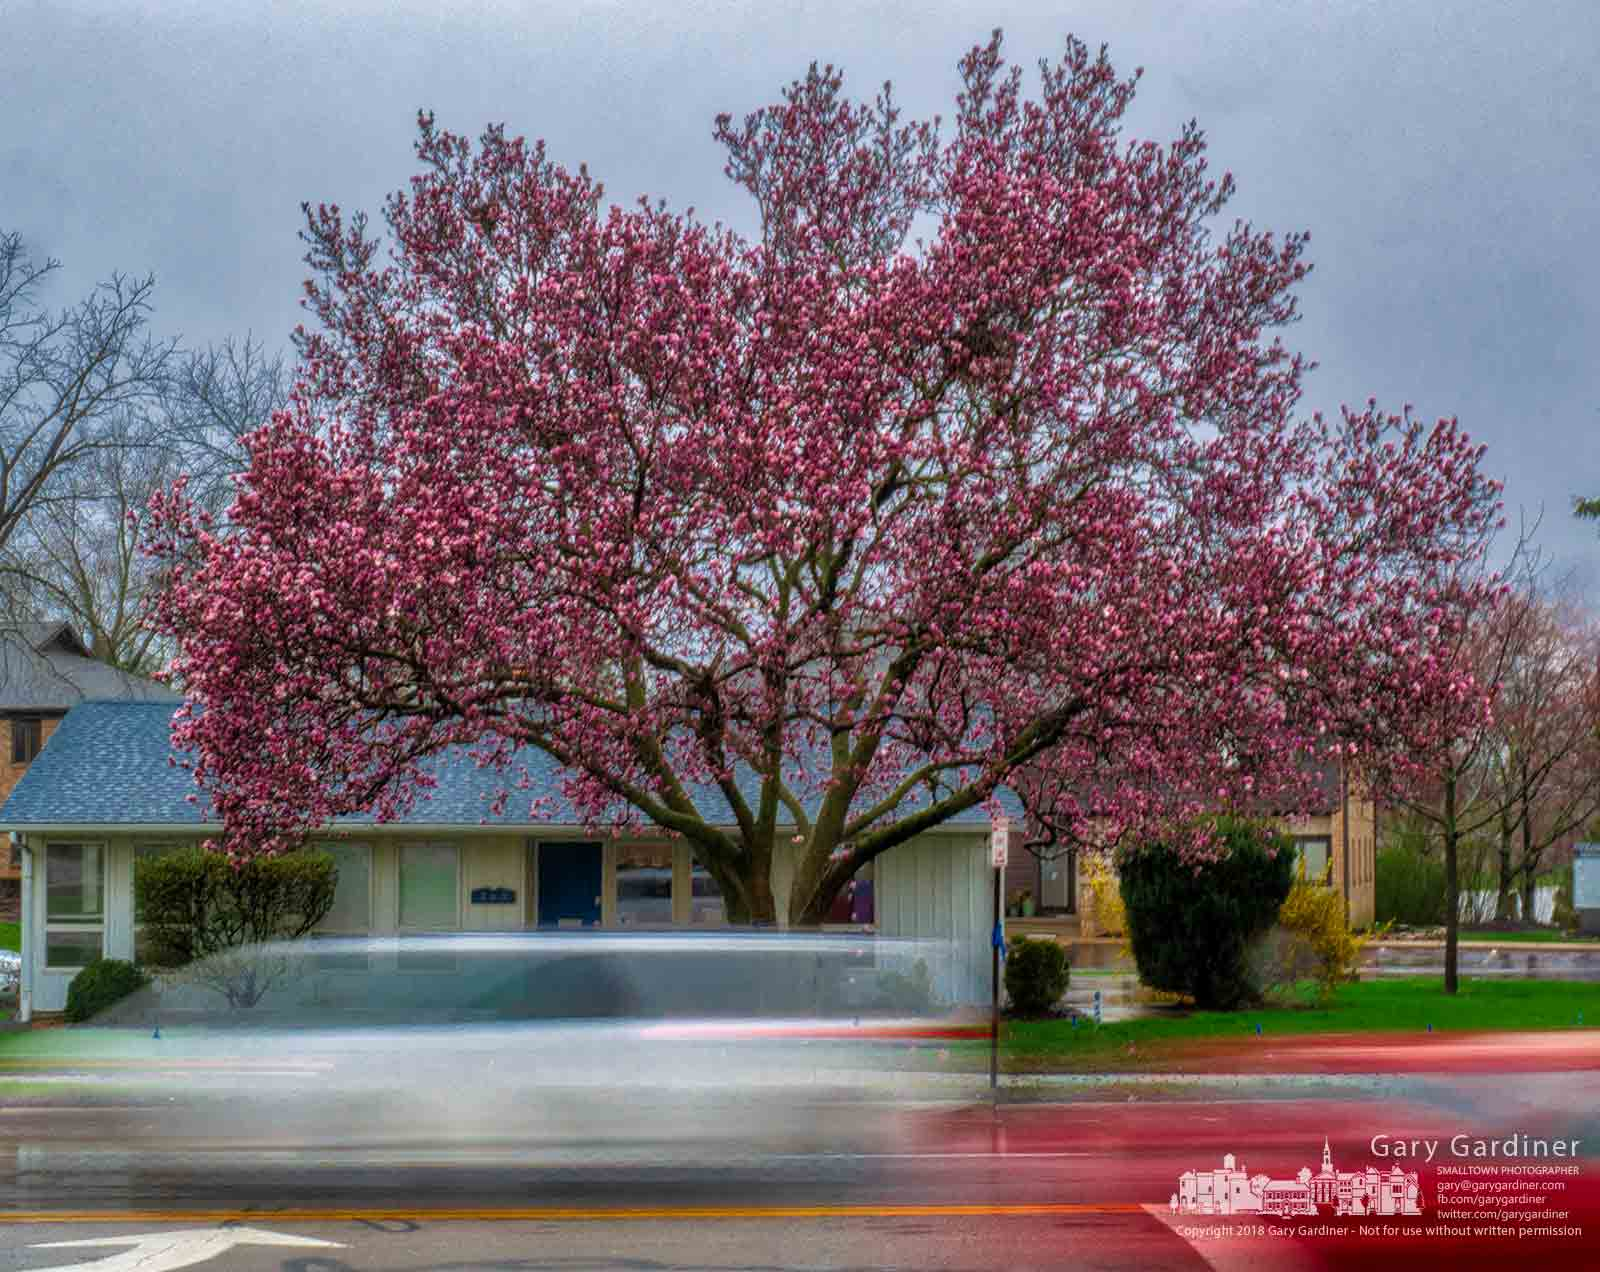 A Japanese Magnolia on South State Street is in full blossom sharing its Spring colors with drivers rushing by on a Sunday afternoon. My Final Photo for April 15, 2018.